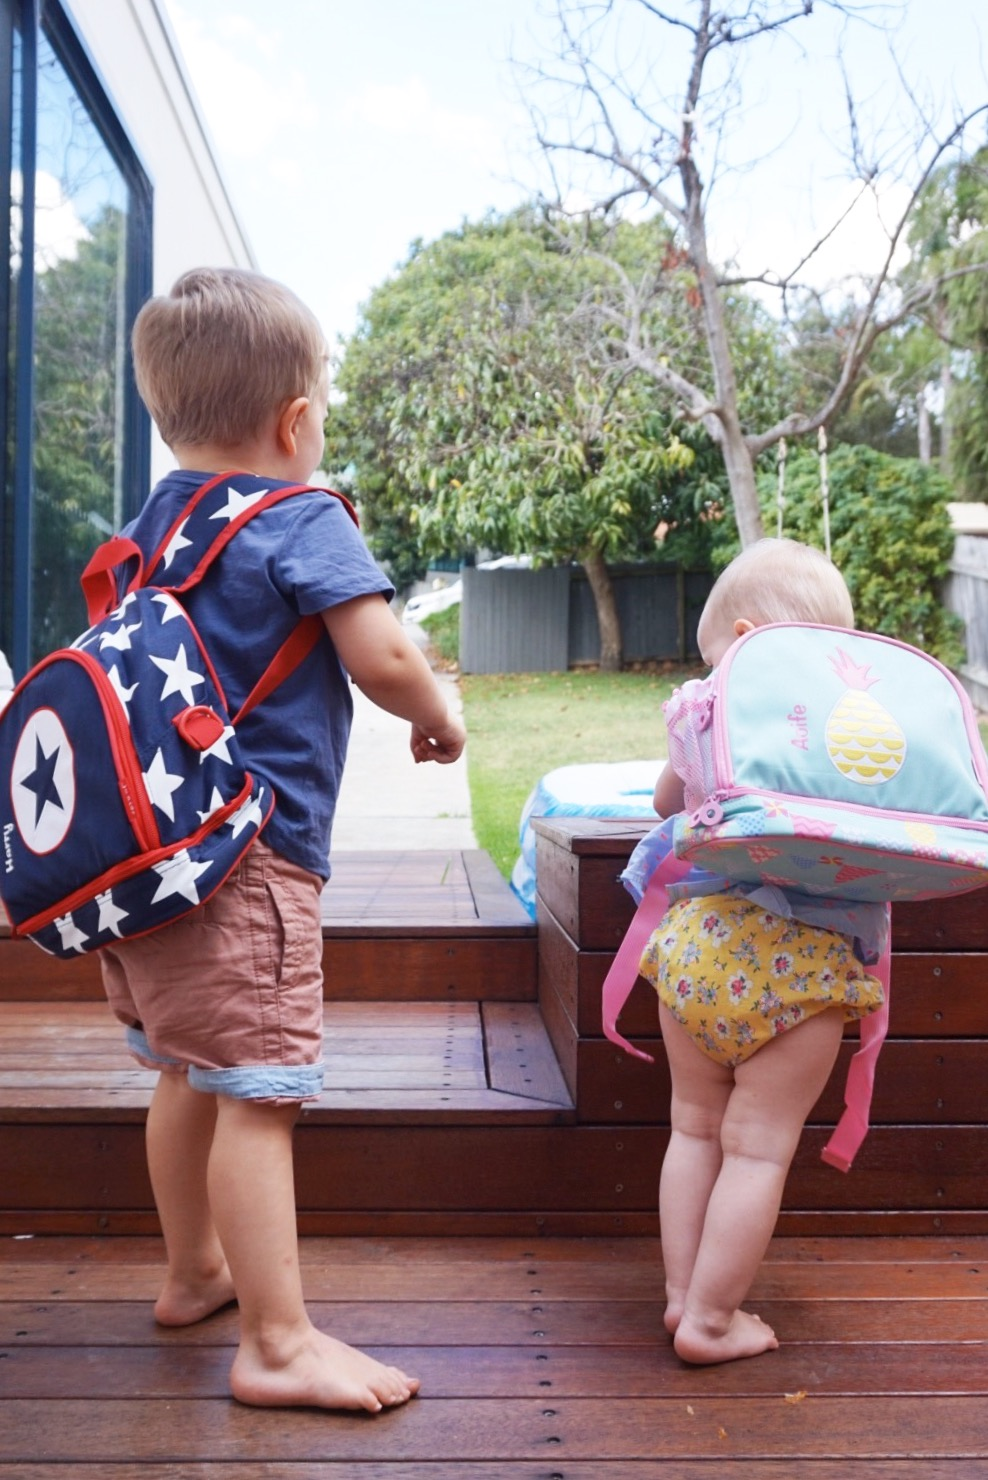 Stuck On You backpacks (Captain America inspired for Harry, of course!).